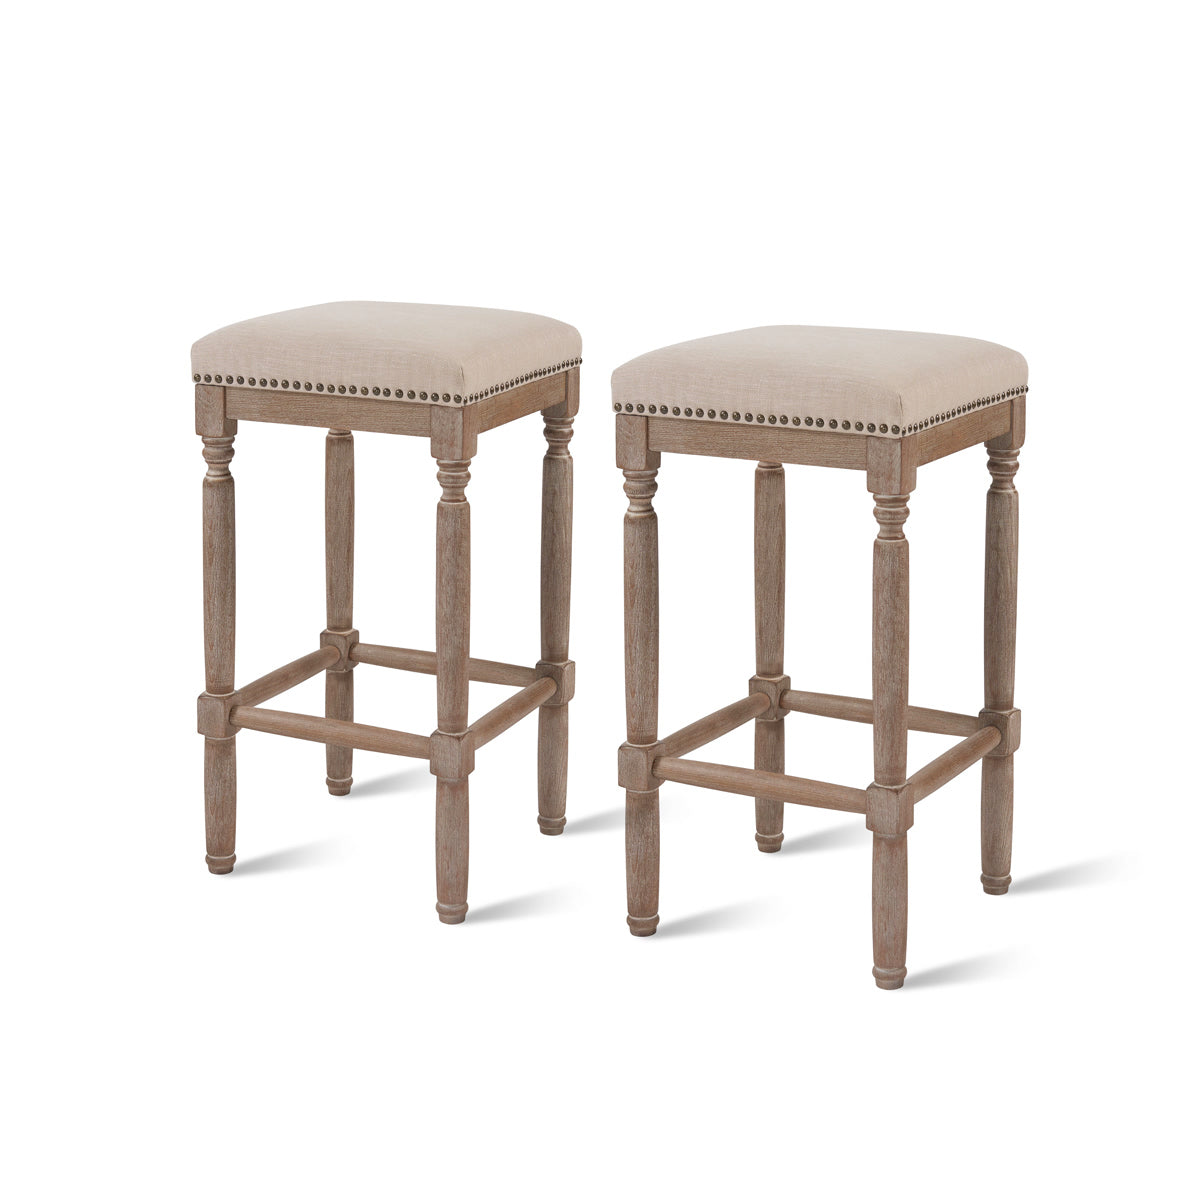 Ernie Fabric Bar Stool - Set of 2 by New Pacific Direct - 3900053-392